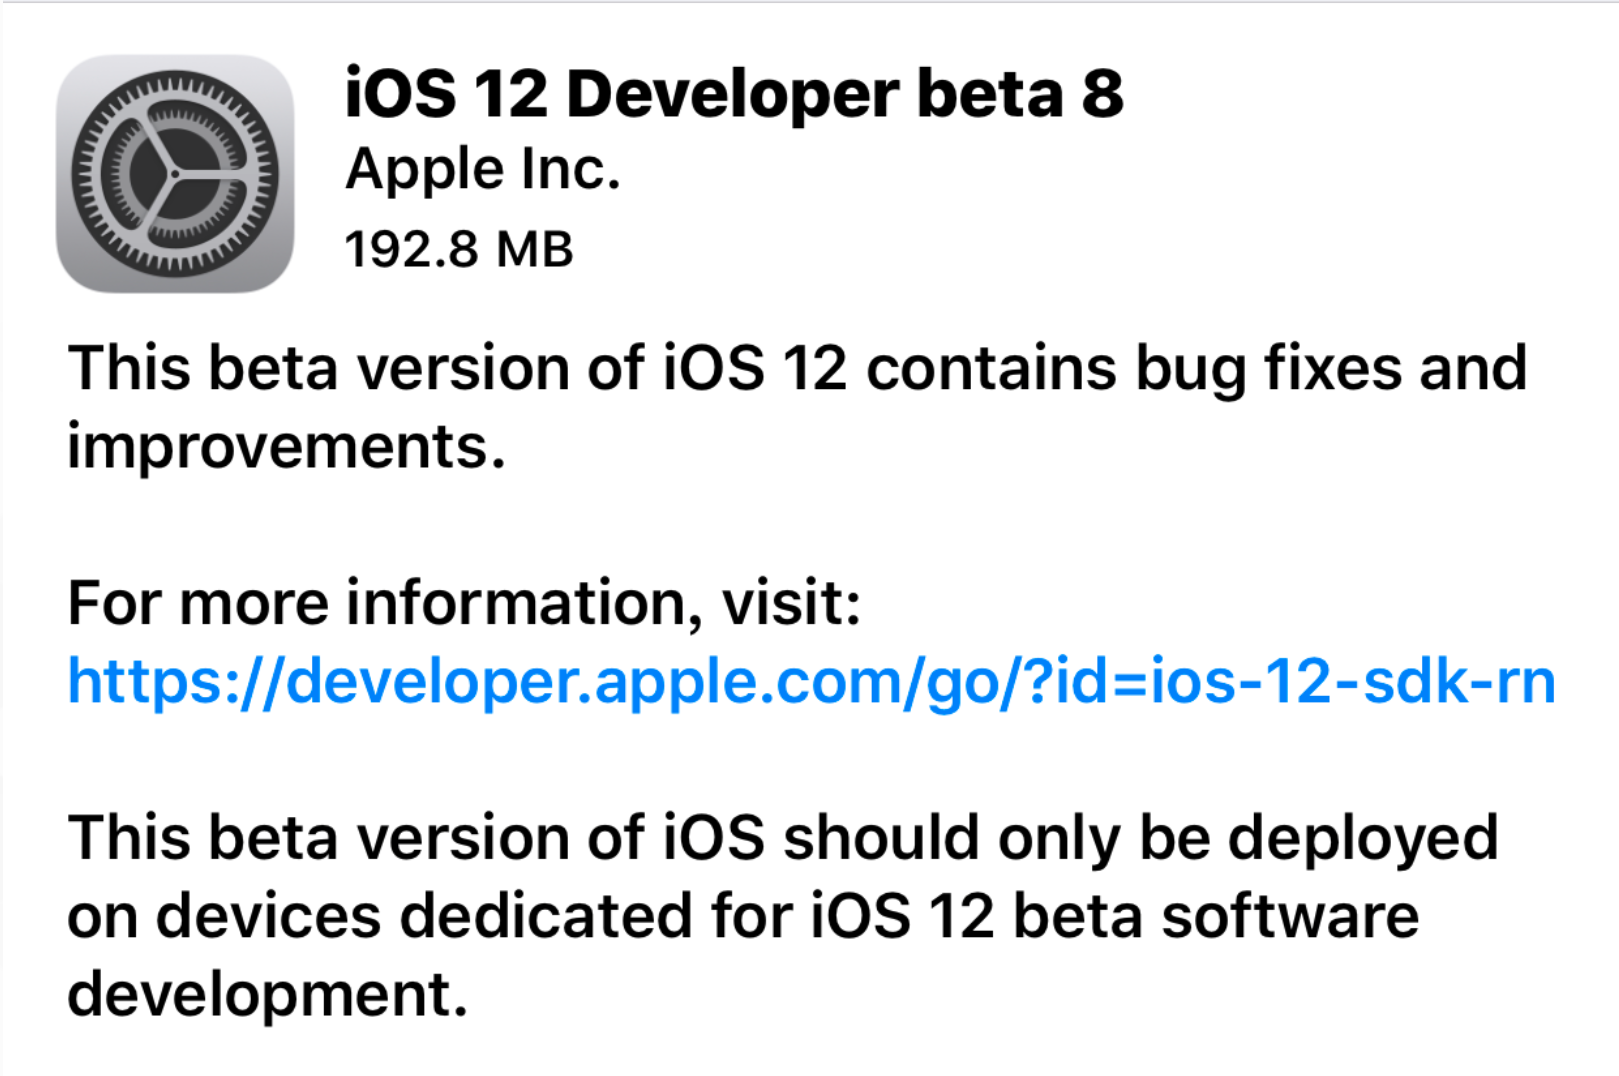 Apple released iOS 12 Public Beta 6